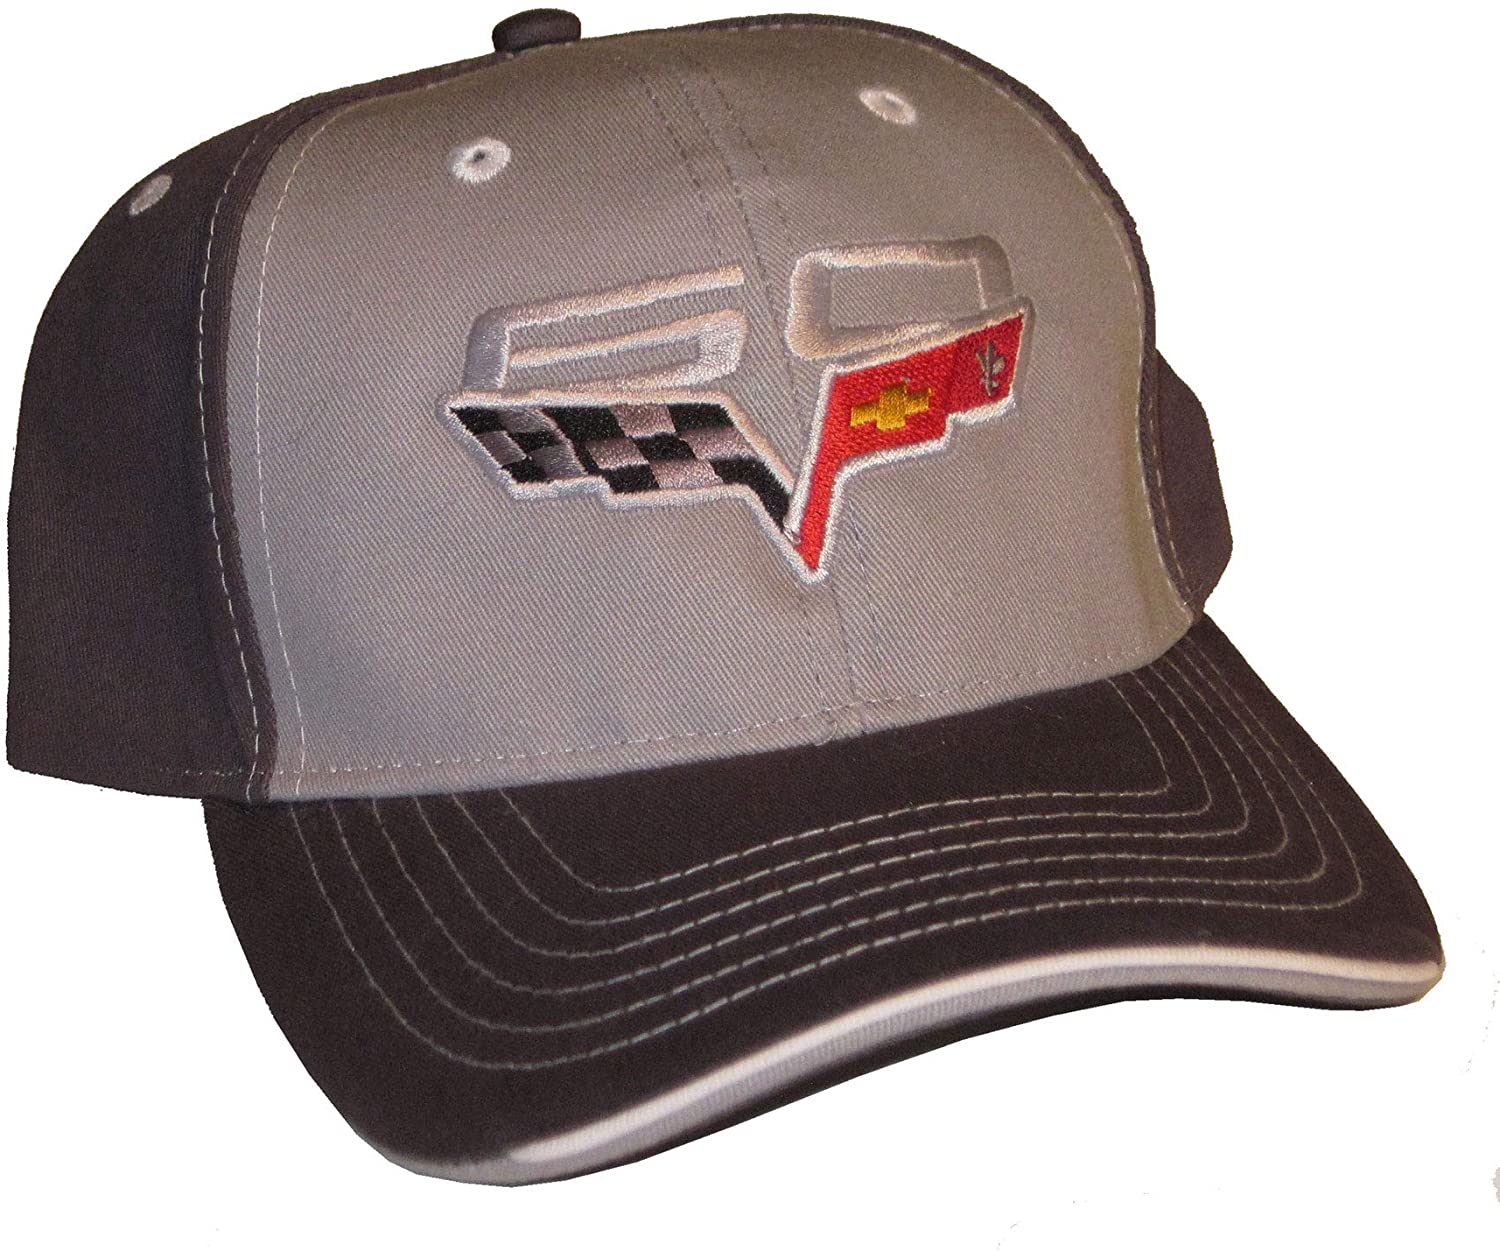 Gregs Automotive Compatible Corvette 60th Anniversary Gray Logo Hat Cap Chevrolet - Bundle with Driving Style Decal